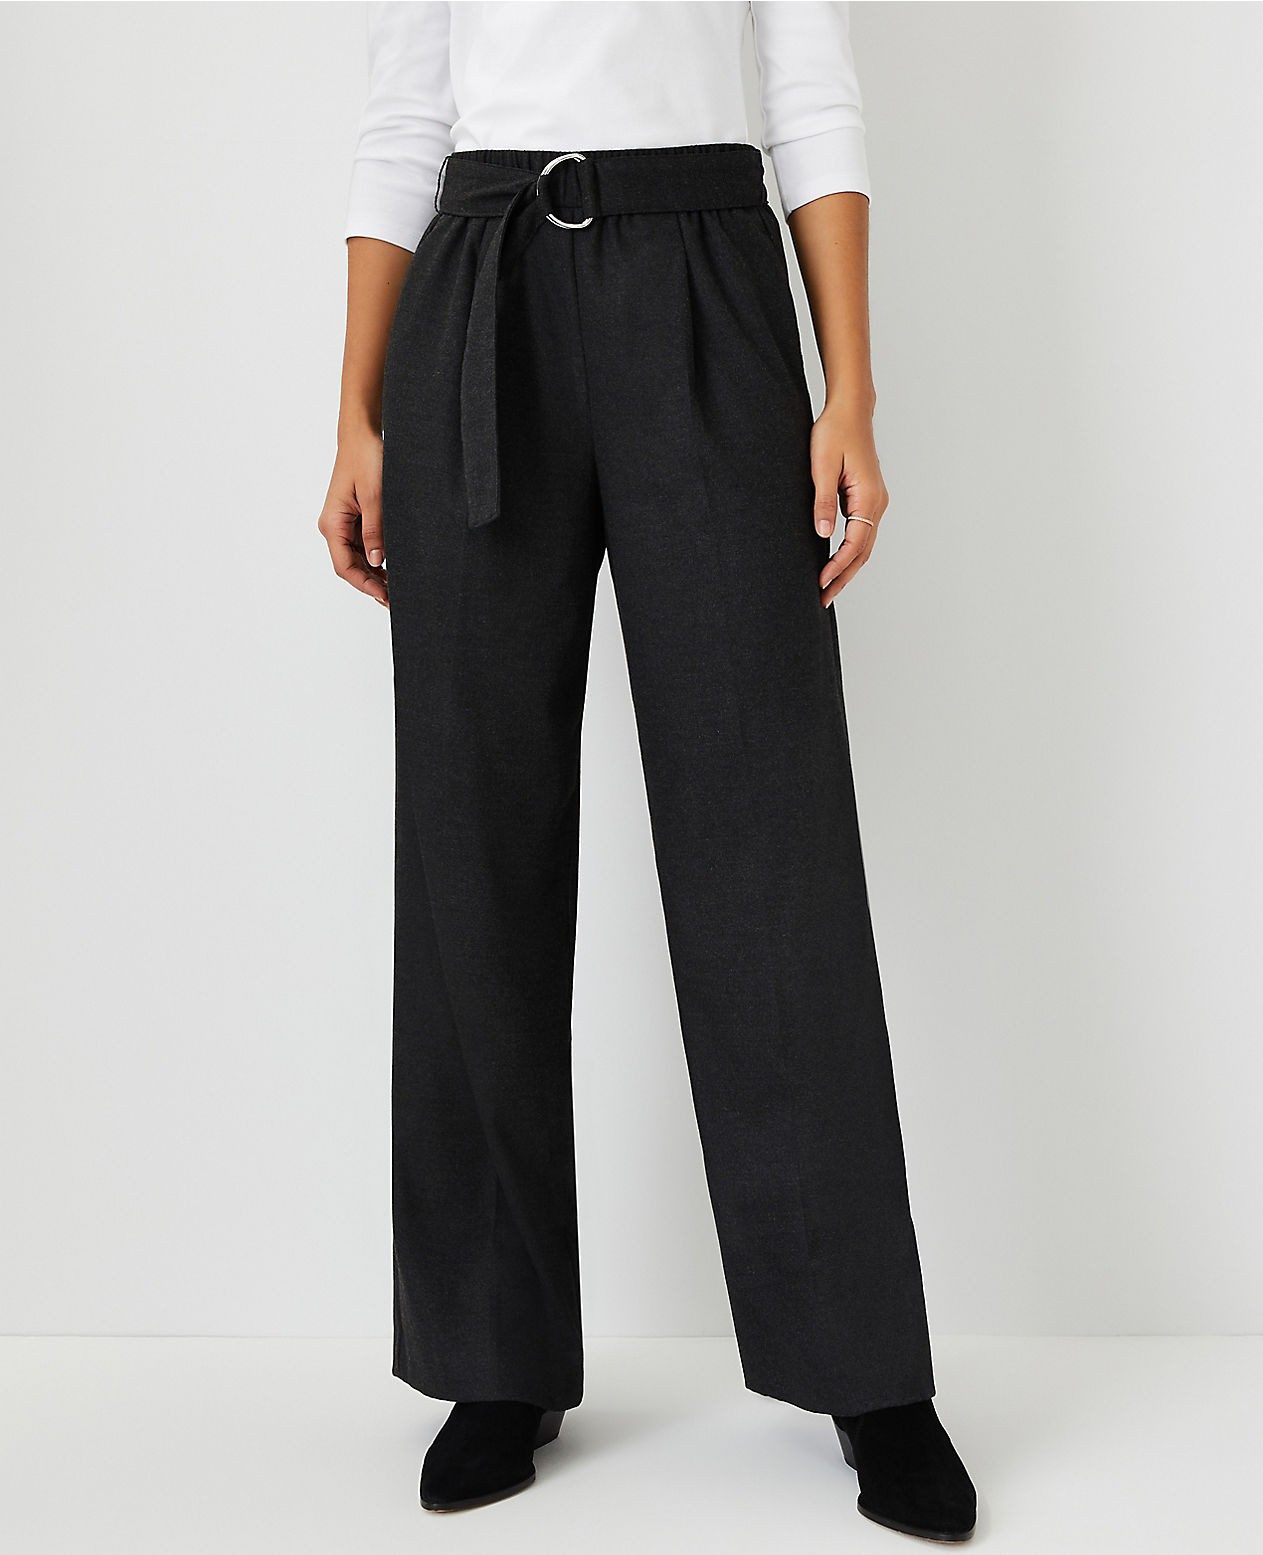 Ann Taylor The Tall Belted Flannel Wide Leg Pant Trouser